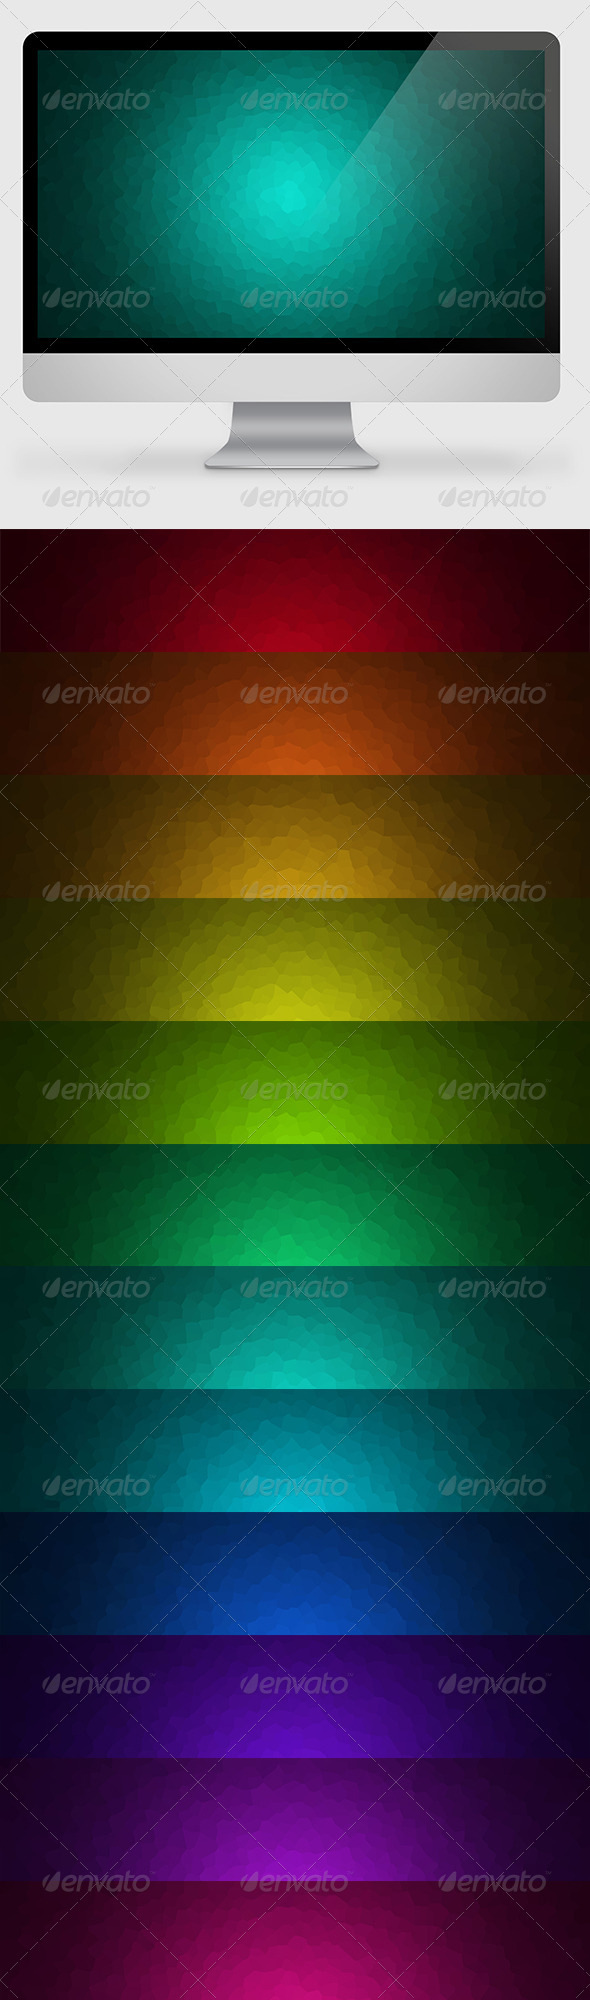 Abstract Colored Backgrounds/Wallpapers - Abstract Backgrounds